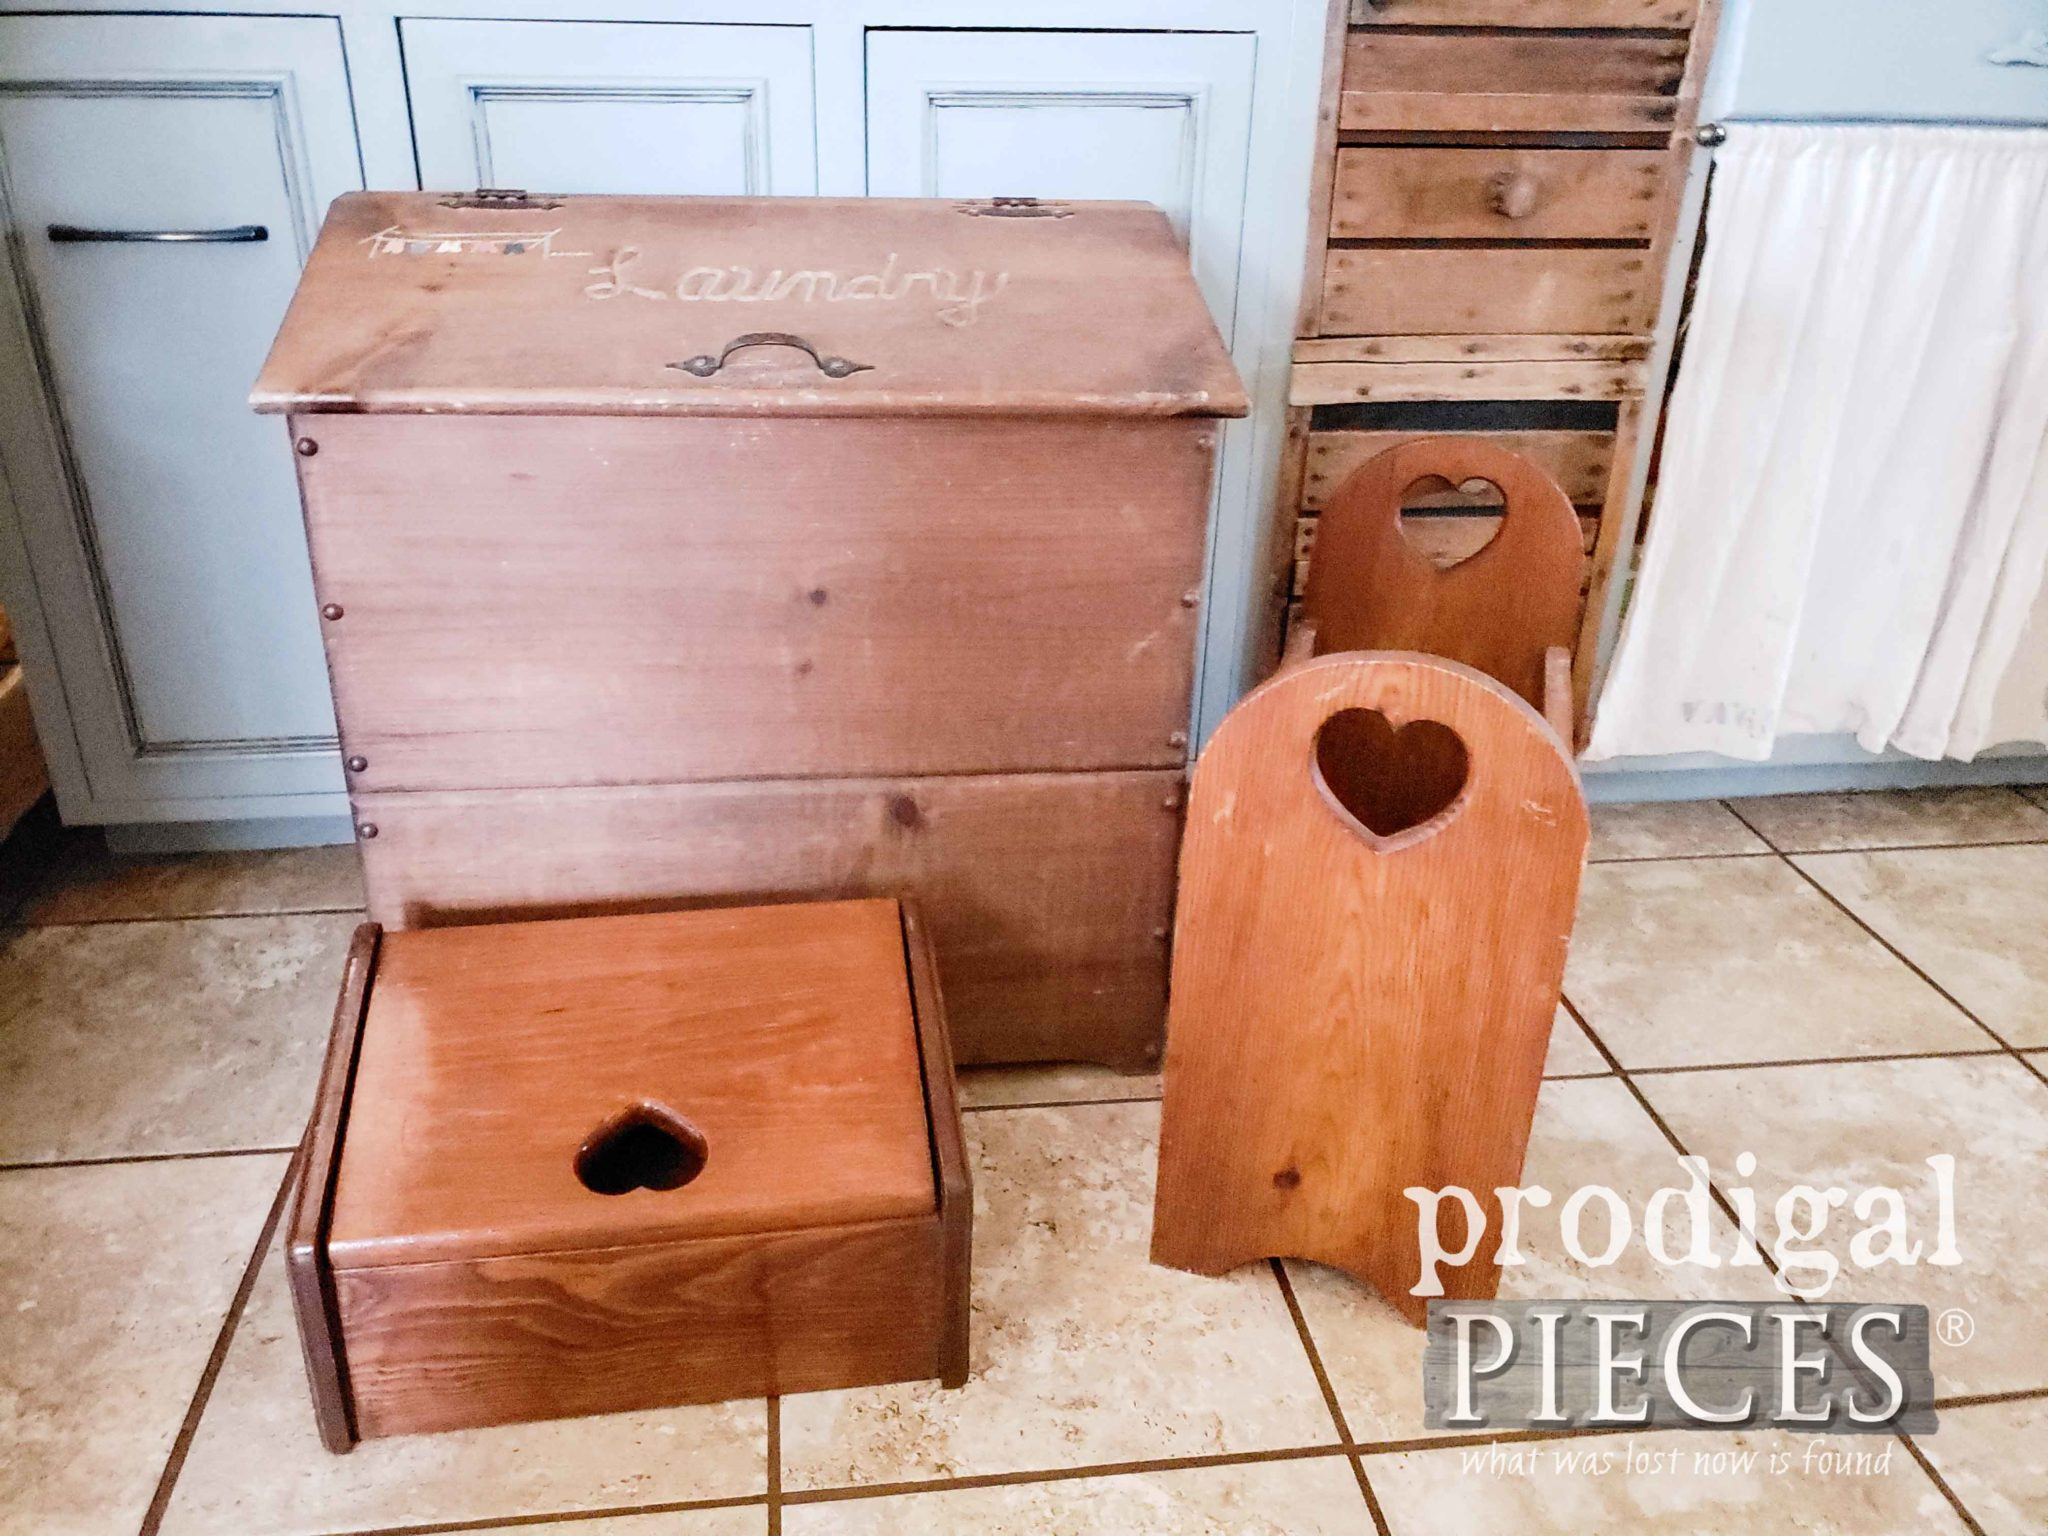 Vintage Thrift Store Heart Cut-Out Wooden Bins | prodigalpieces.com